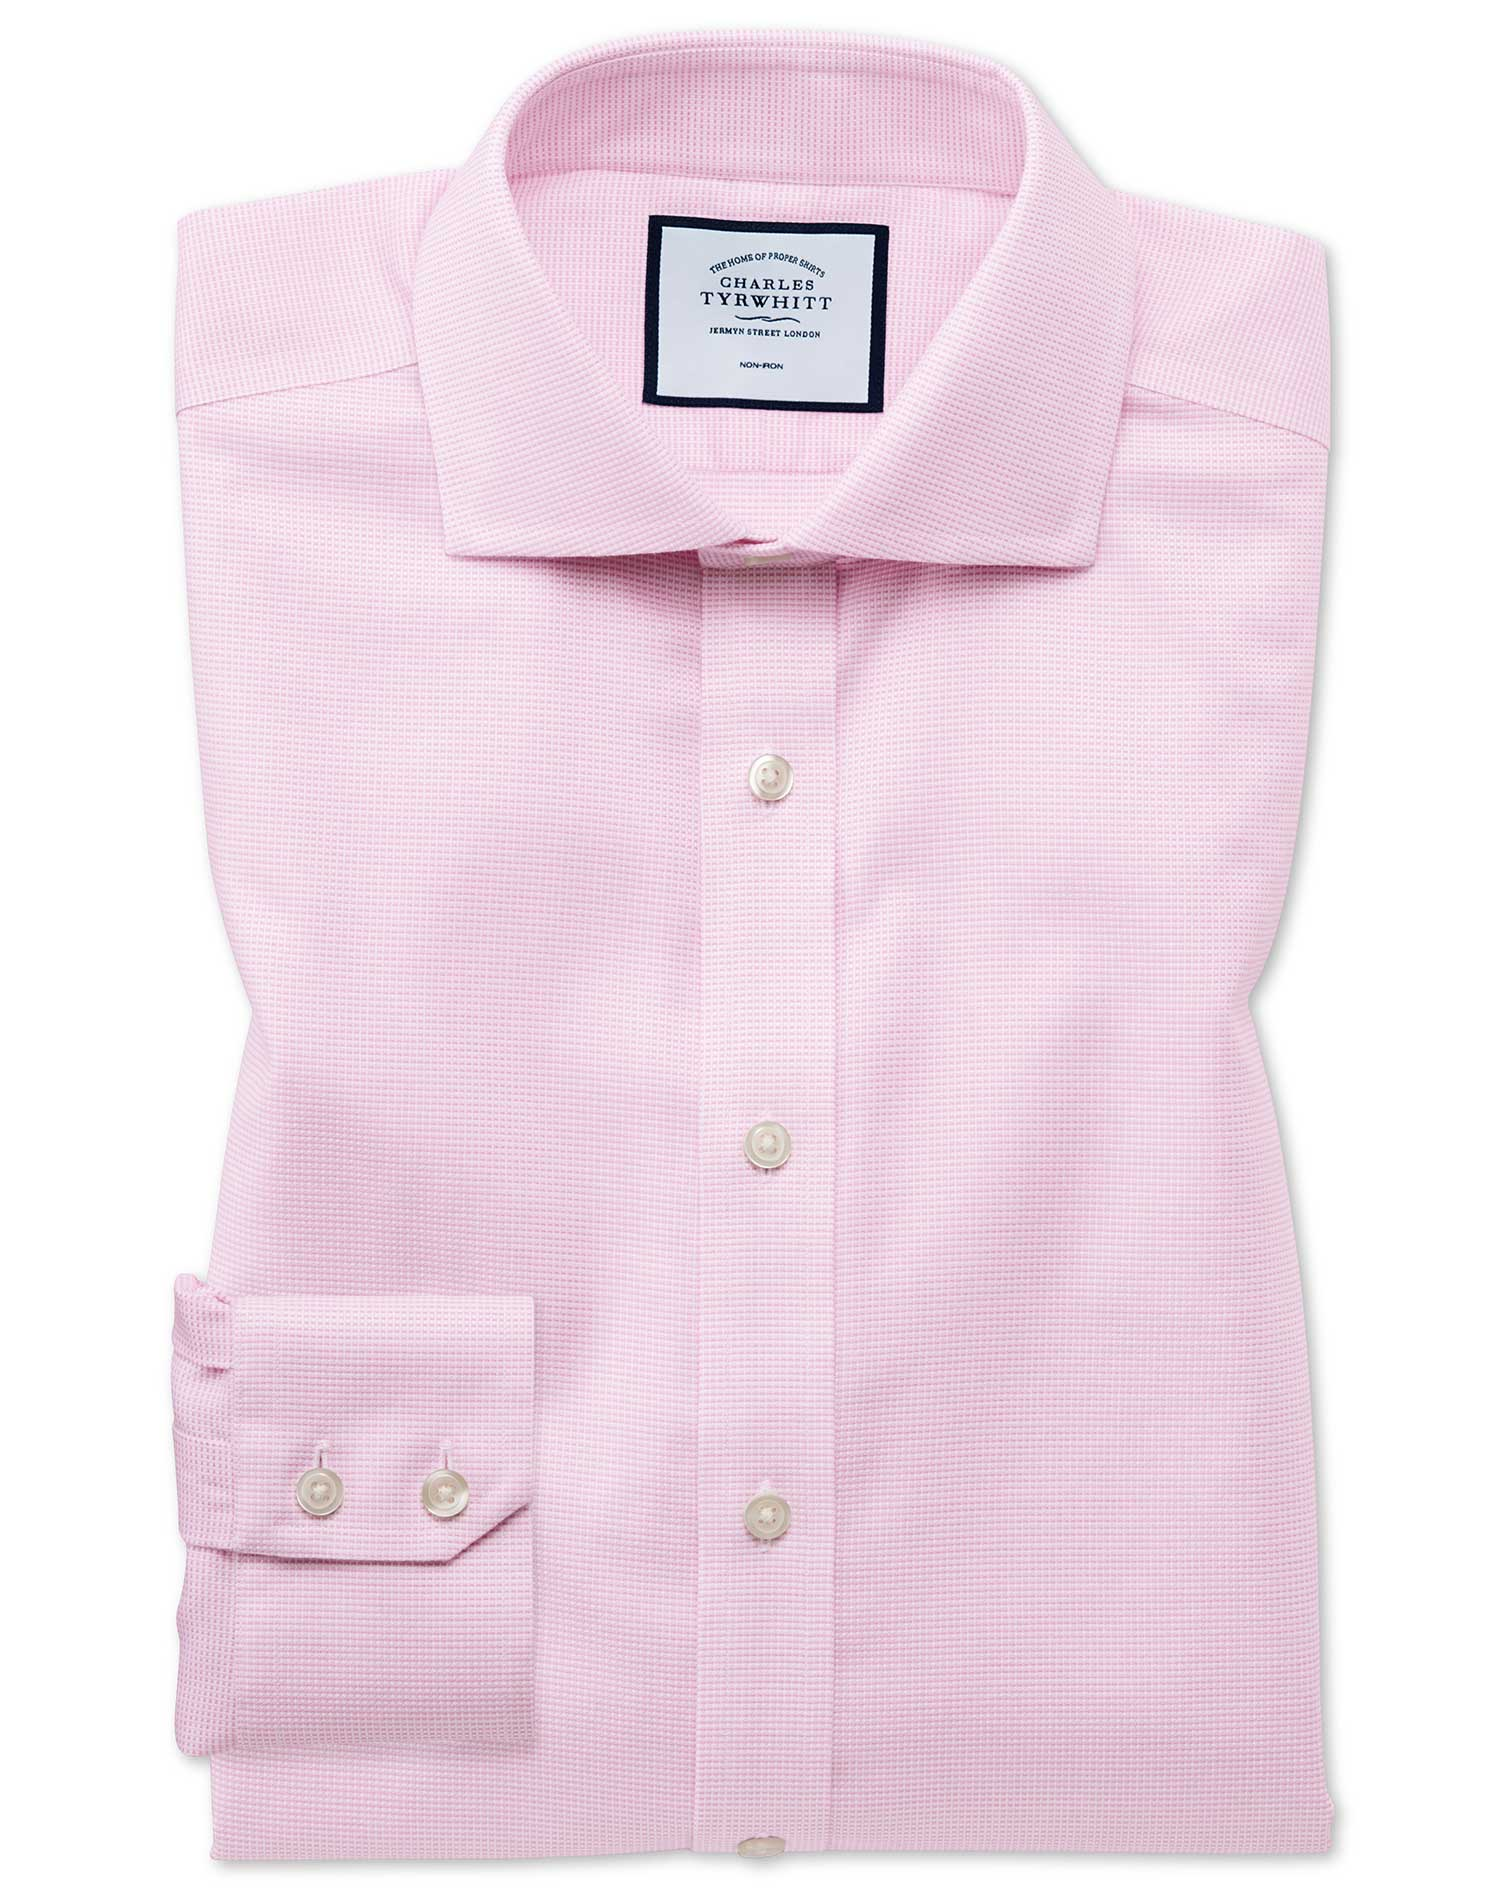 Slim Fit Non-Iron Cut-Away Collar Pink Oxford Stretch Cotton Formal Shirt Single Cuff Size 17/35 by